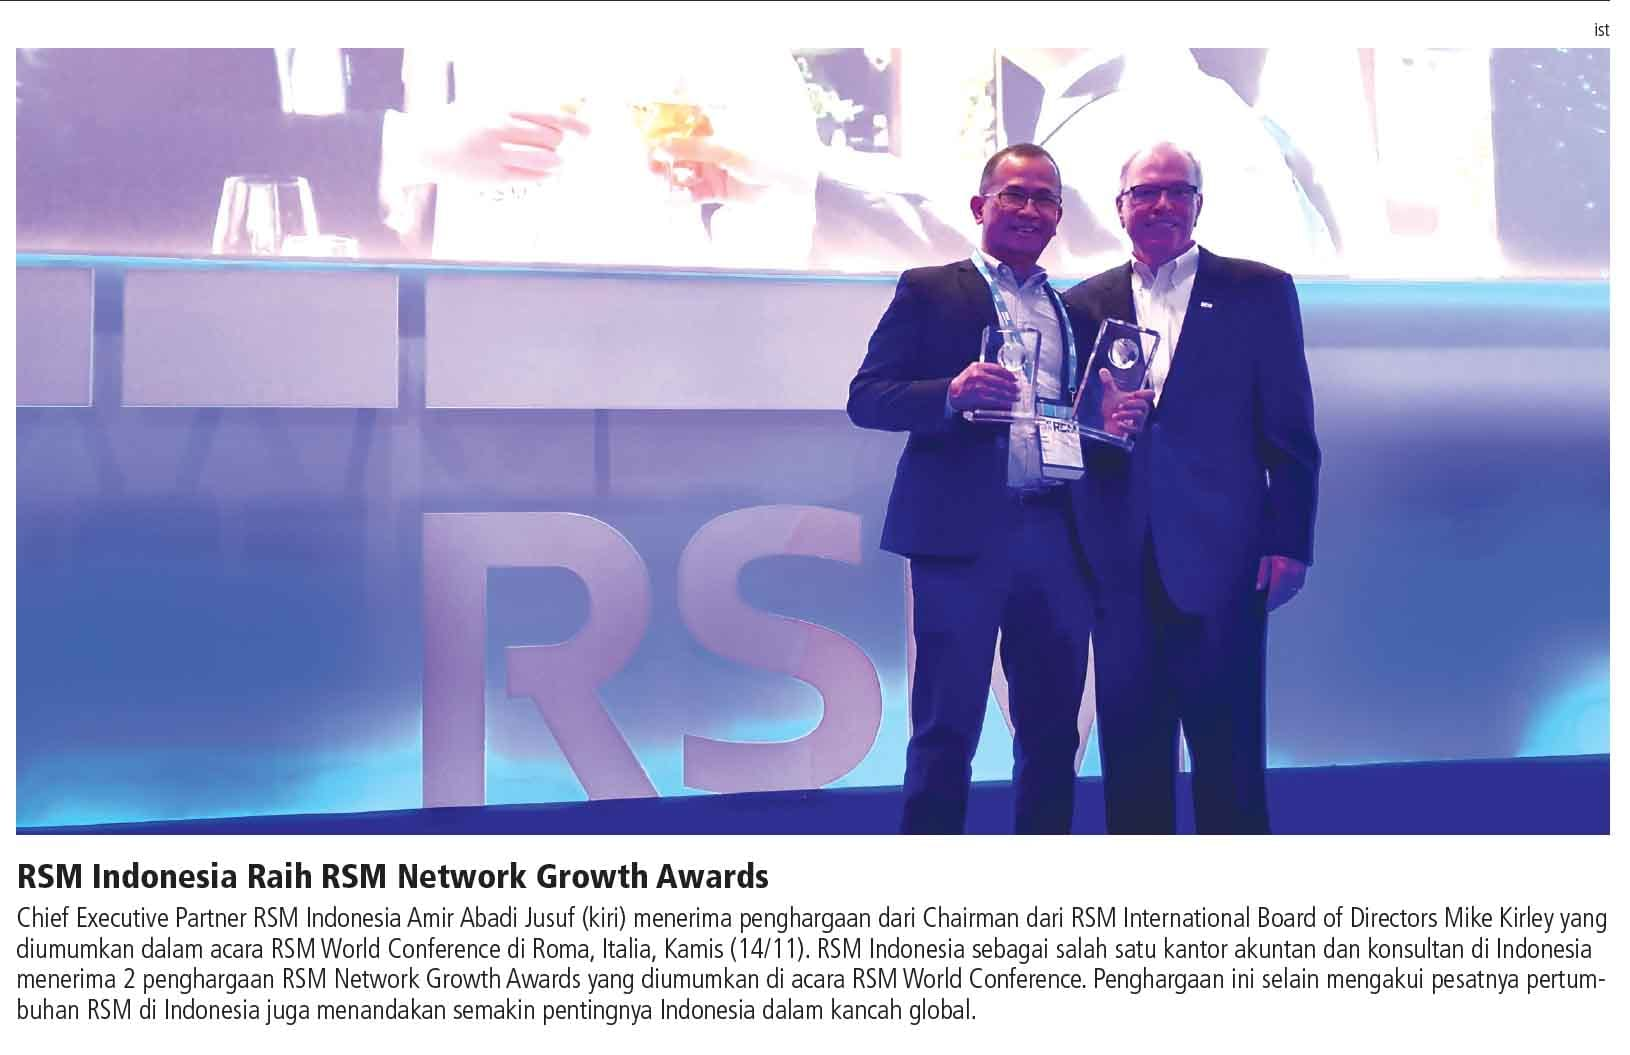 20191116-investor-daily-hal-24-berita-foto-rsm-indonesia-raih-rsm-network-growth-awards.jpg